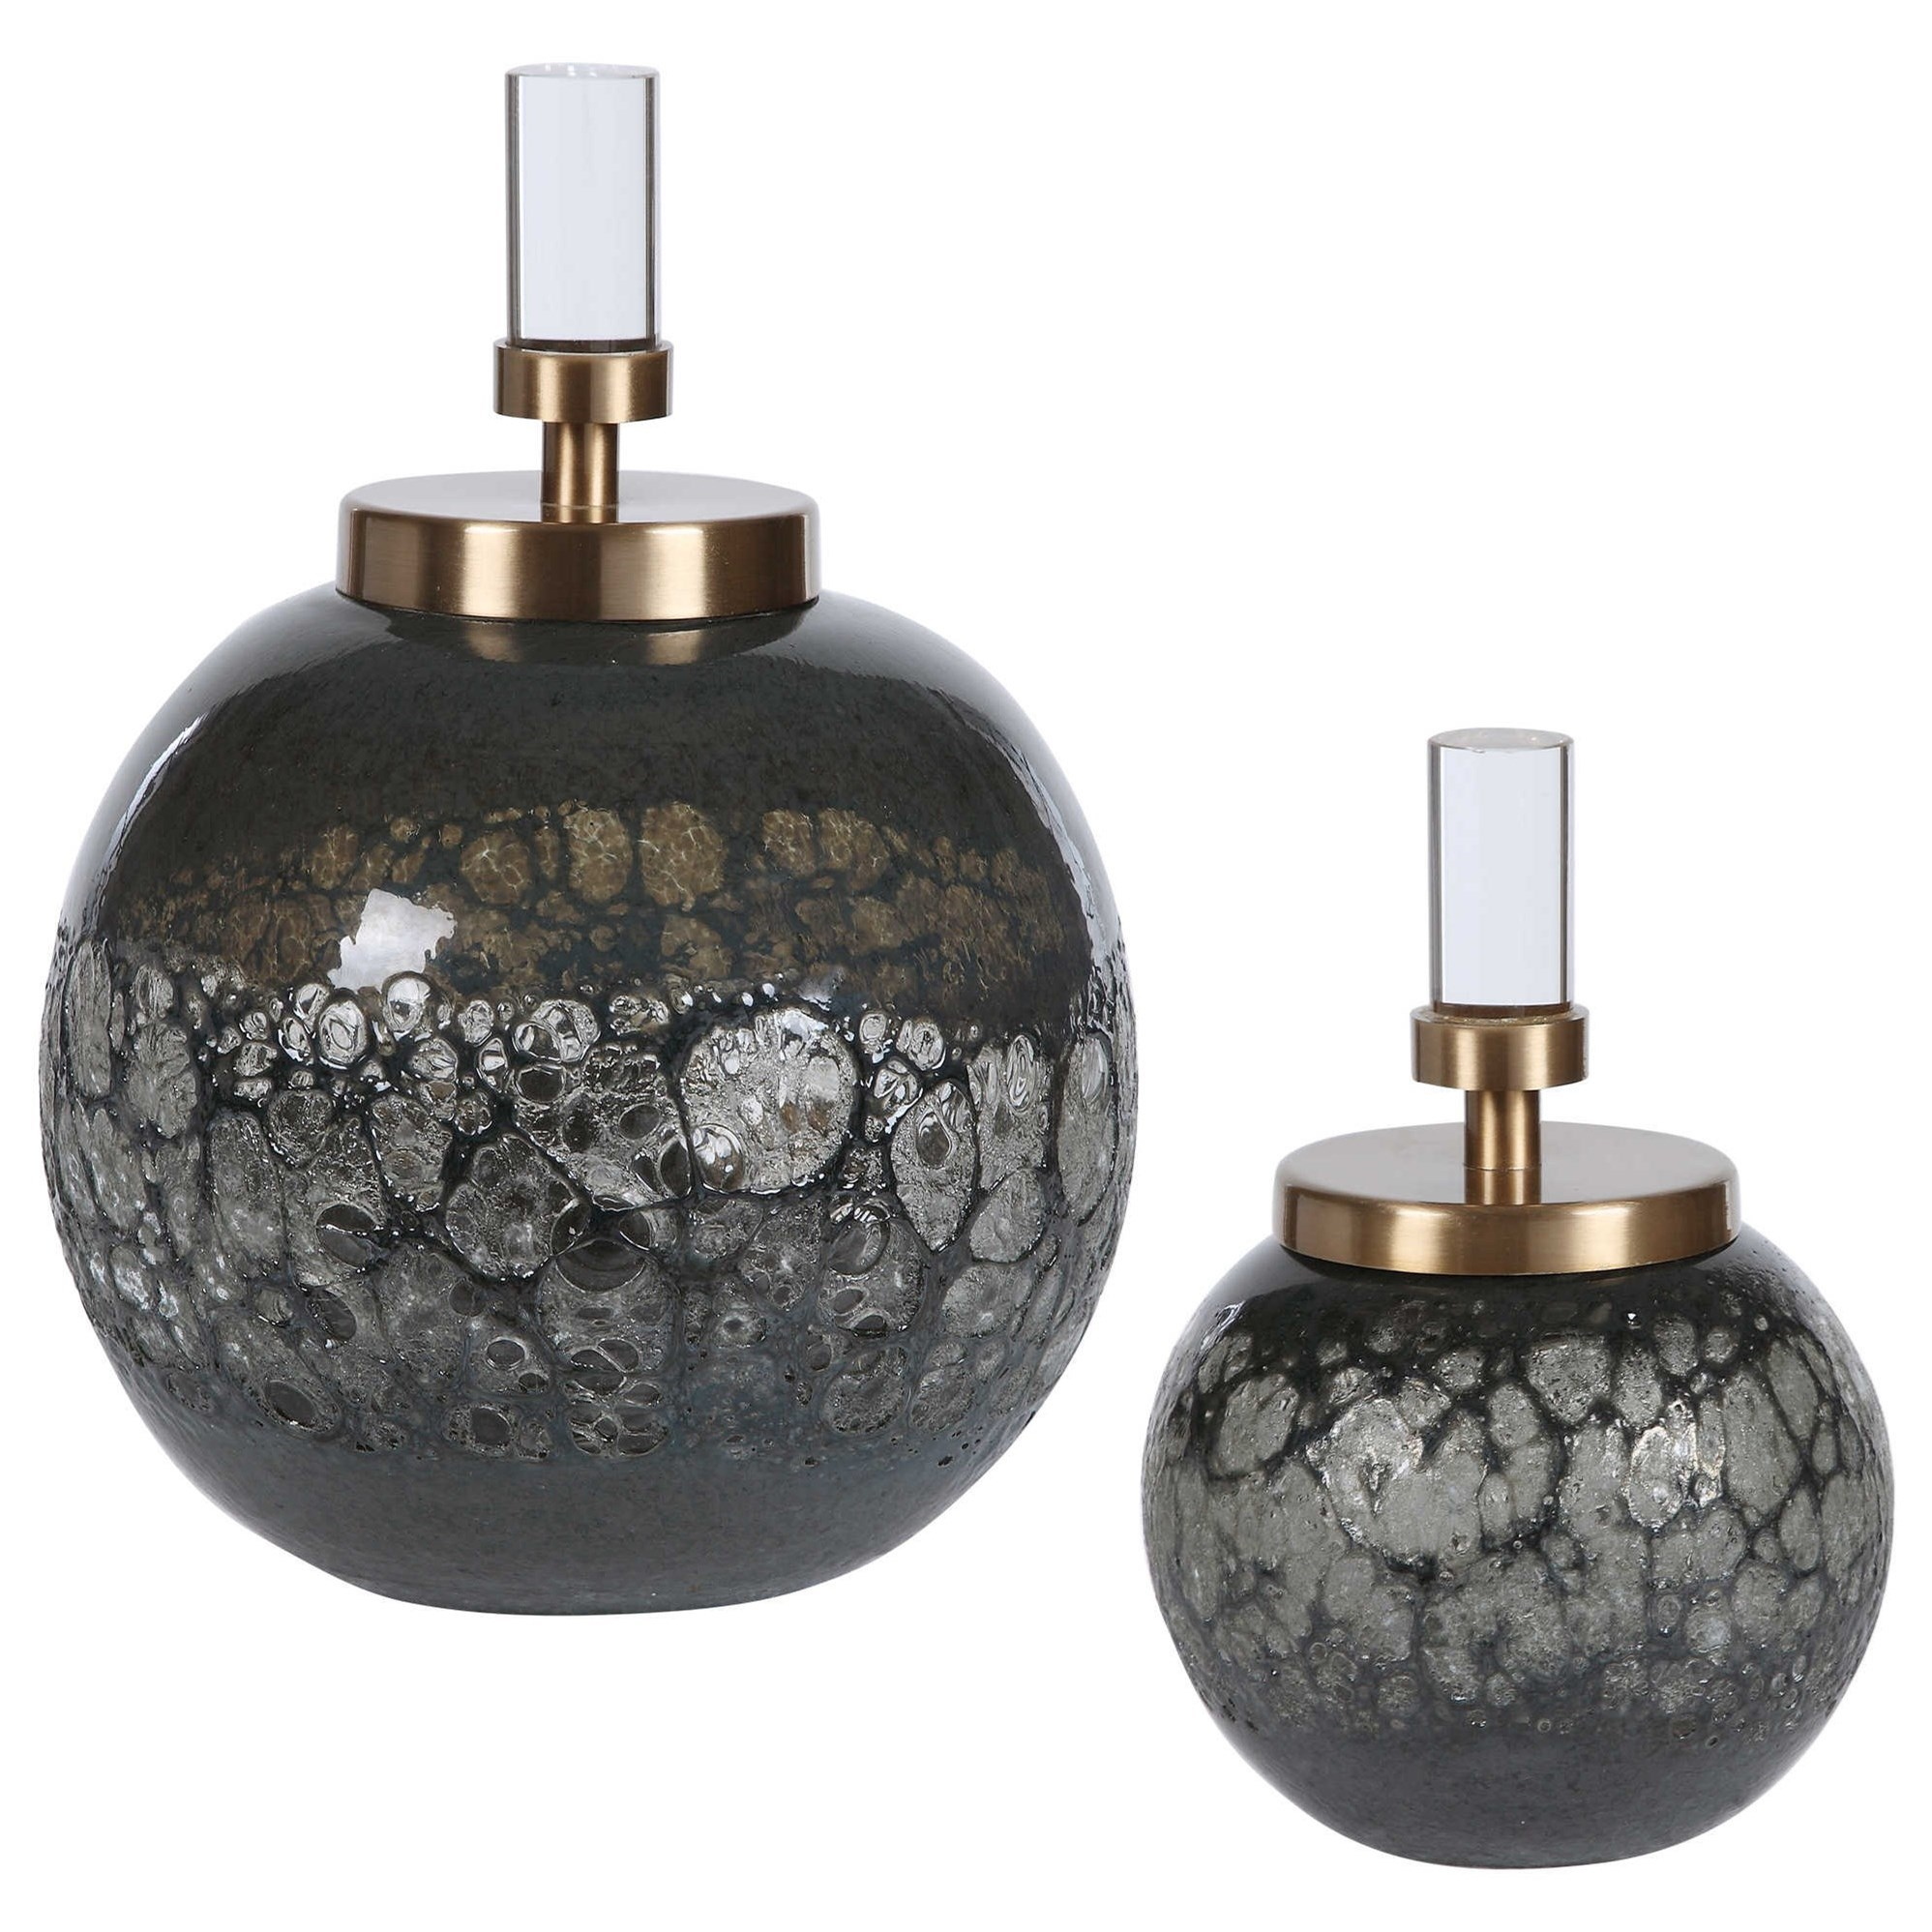 Accessories Cessair Art Glass Bottles, S/2 by Uttermost at Suburban Furniture